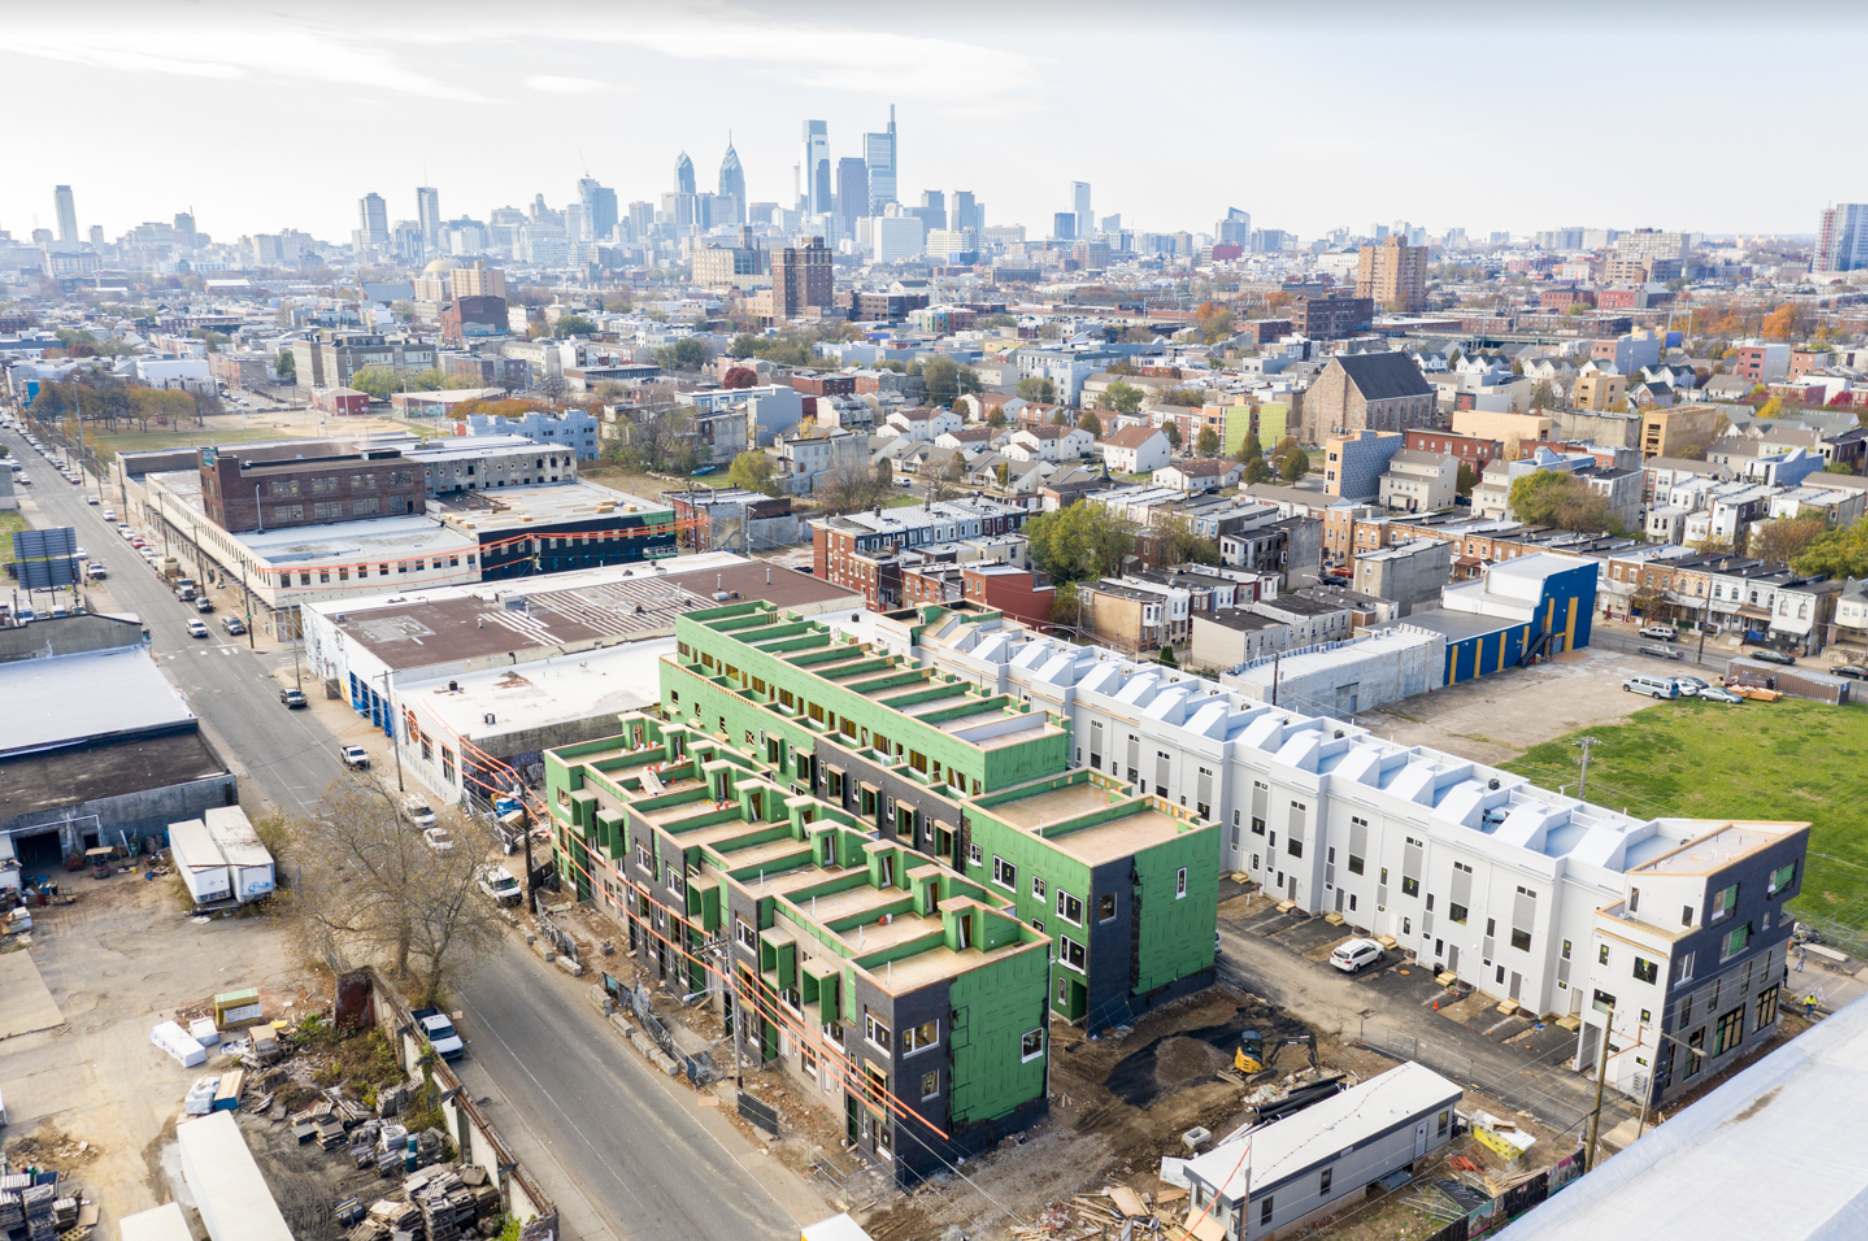 Olde Kensington 19122 - N5 Square offers luxury new construction located in booming Olde/South Kensington contains 57 units within walking distance to Fishtown & Northern Liberties.